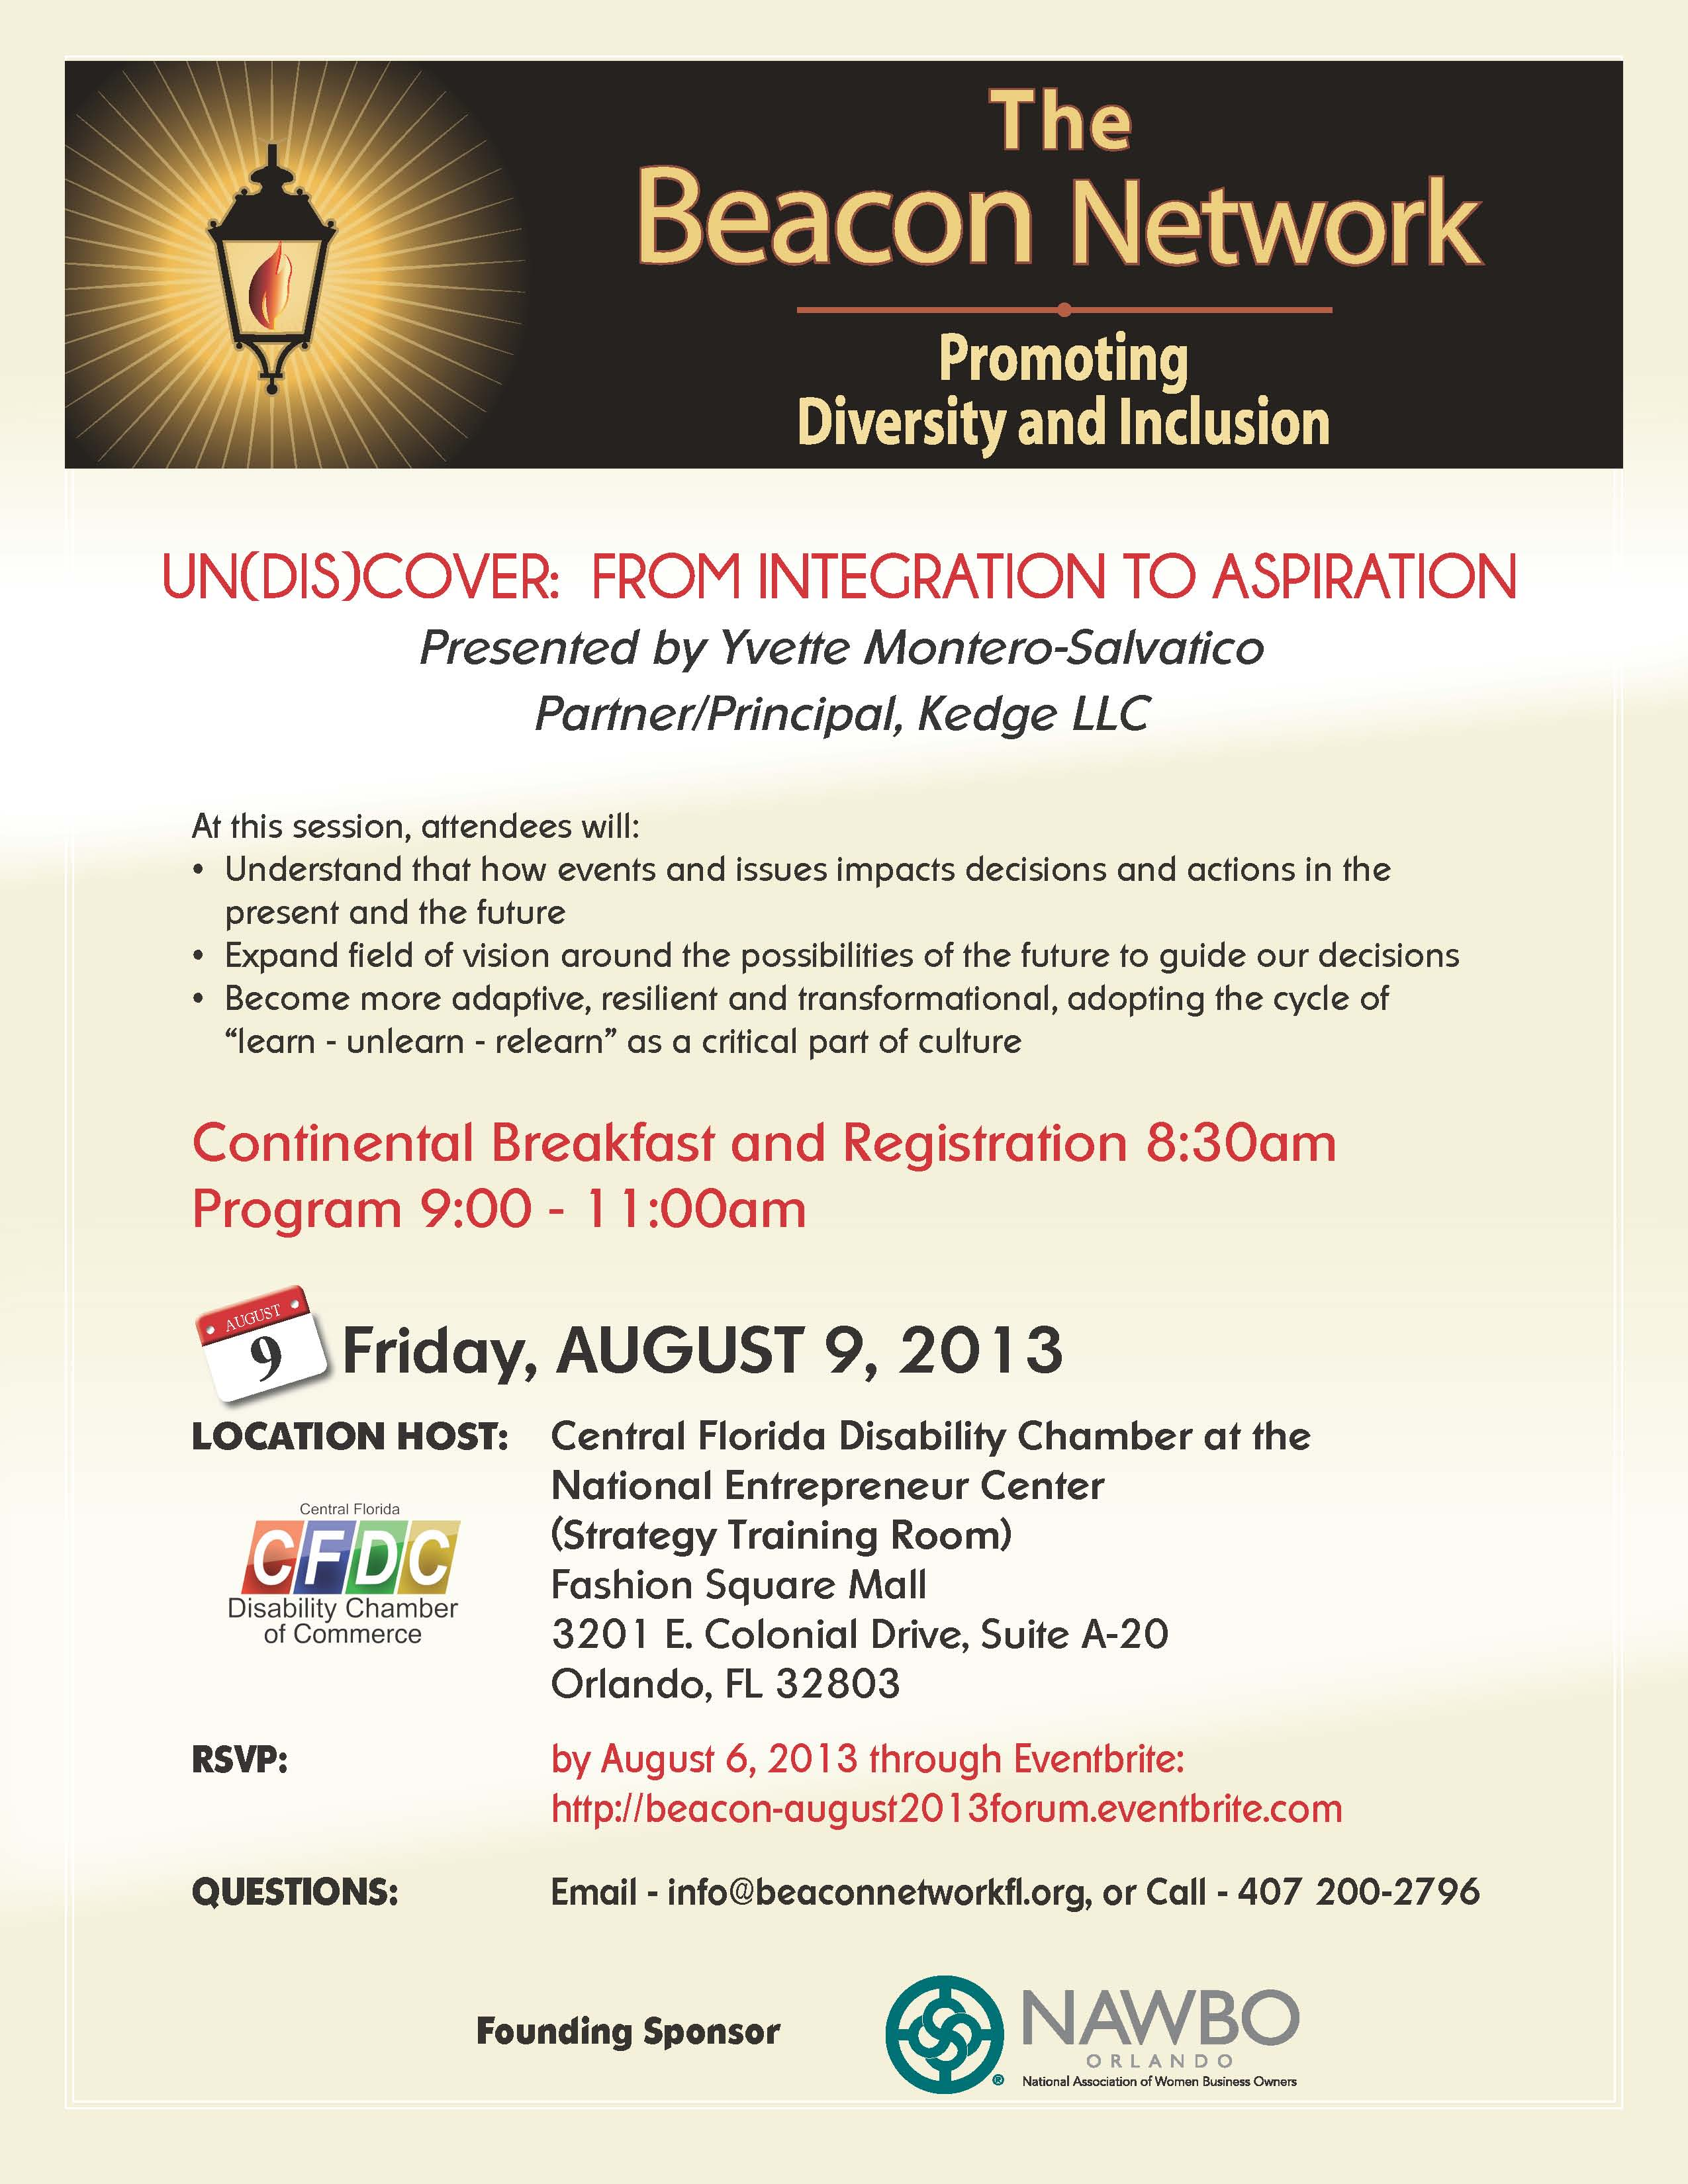 Image: Beacon Network Forum August 09, 2013 Announcement